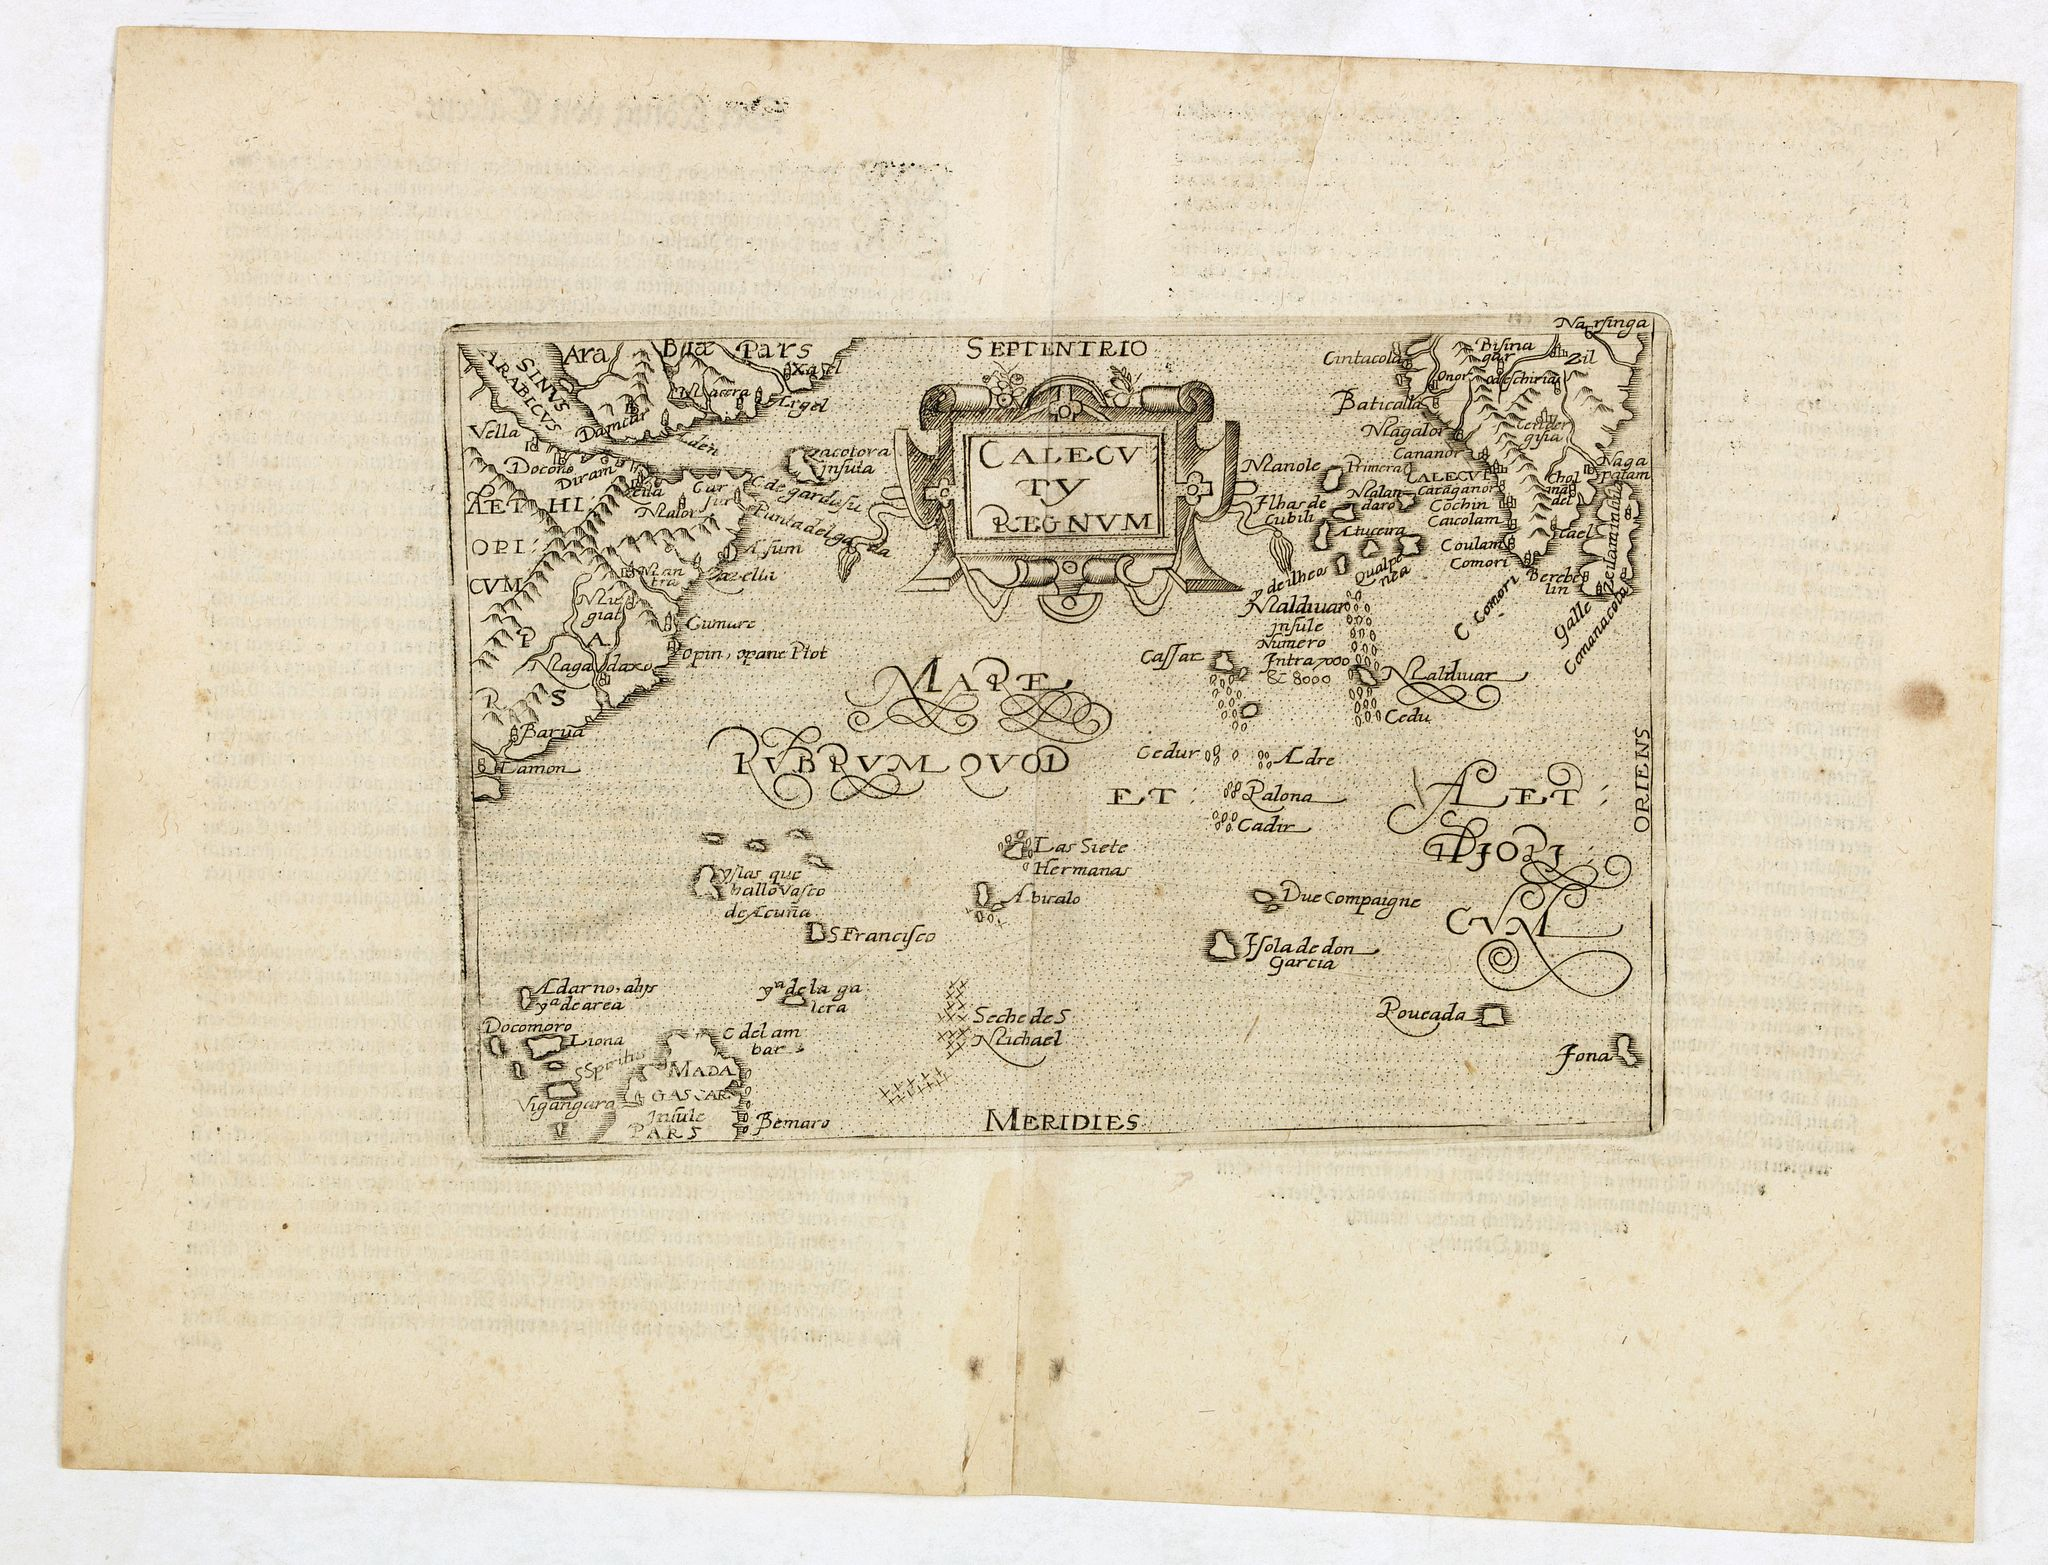 BOTERO, G.,  Calecuty Regnum, antique map, old maps